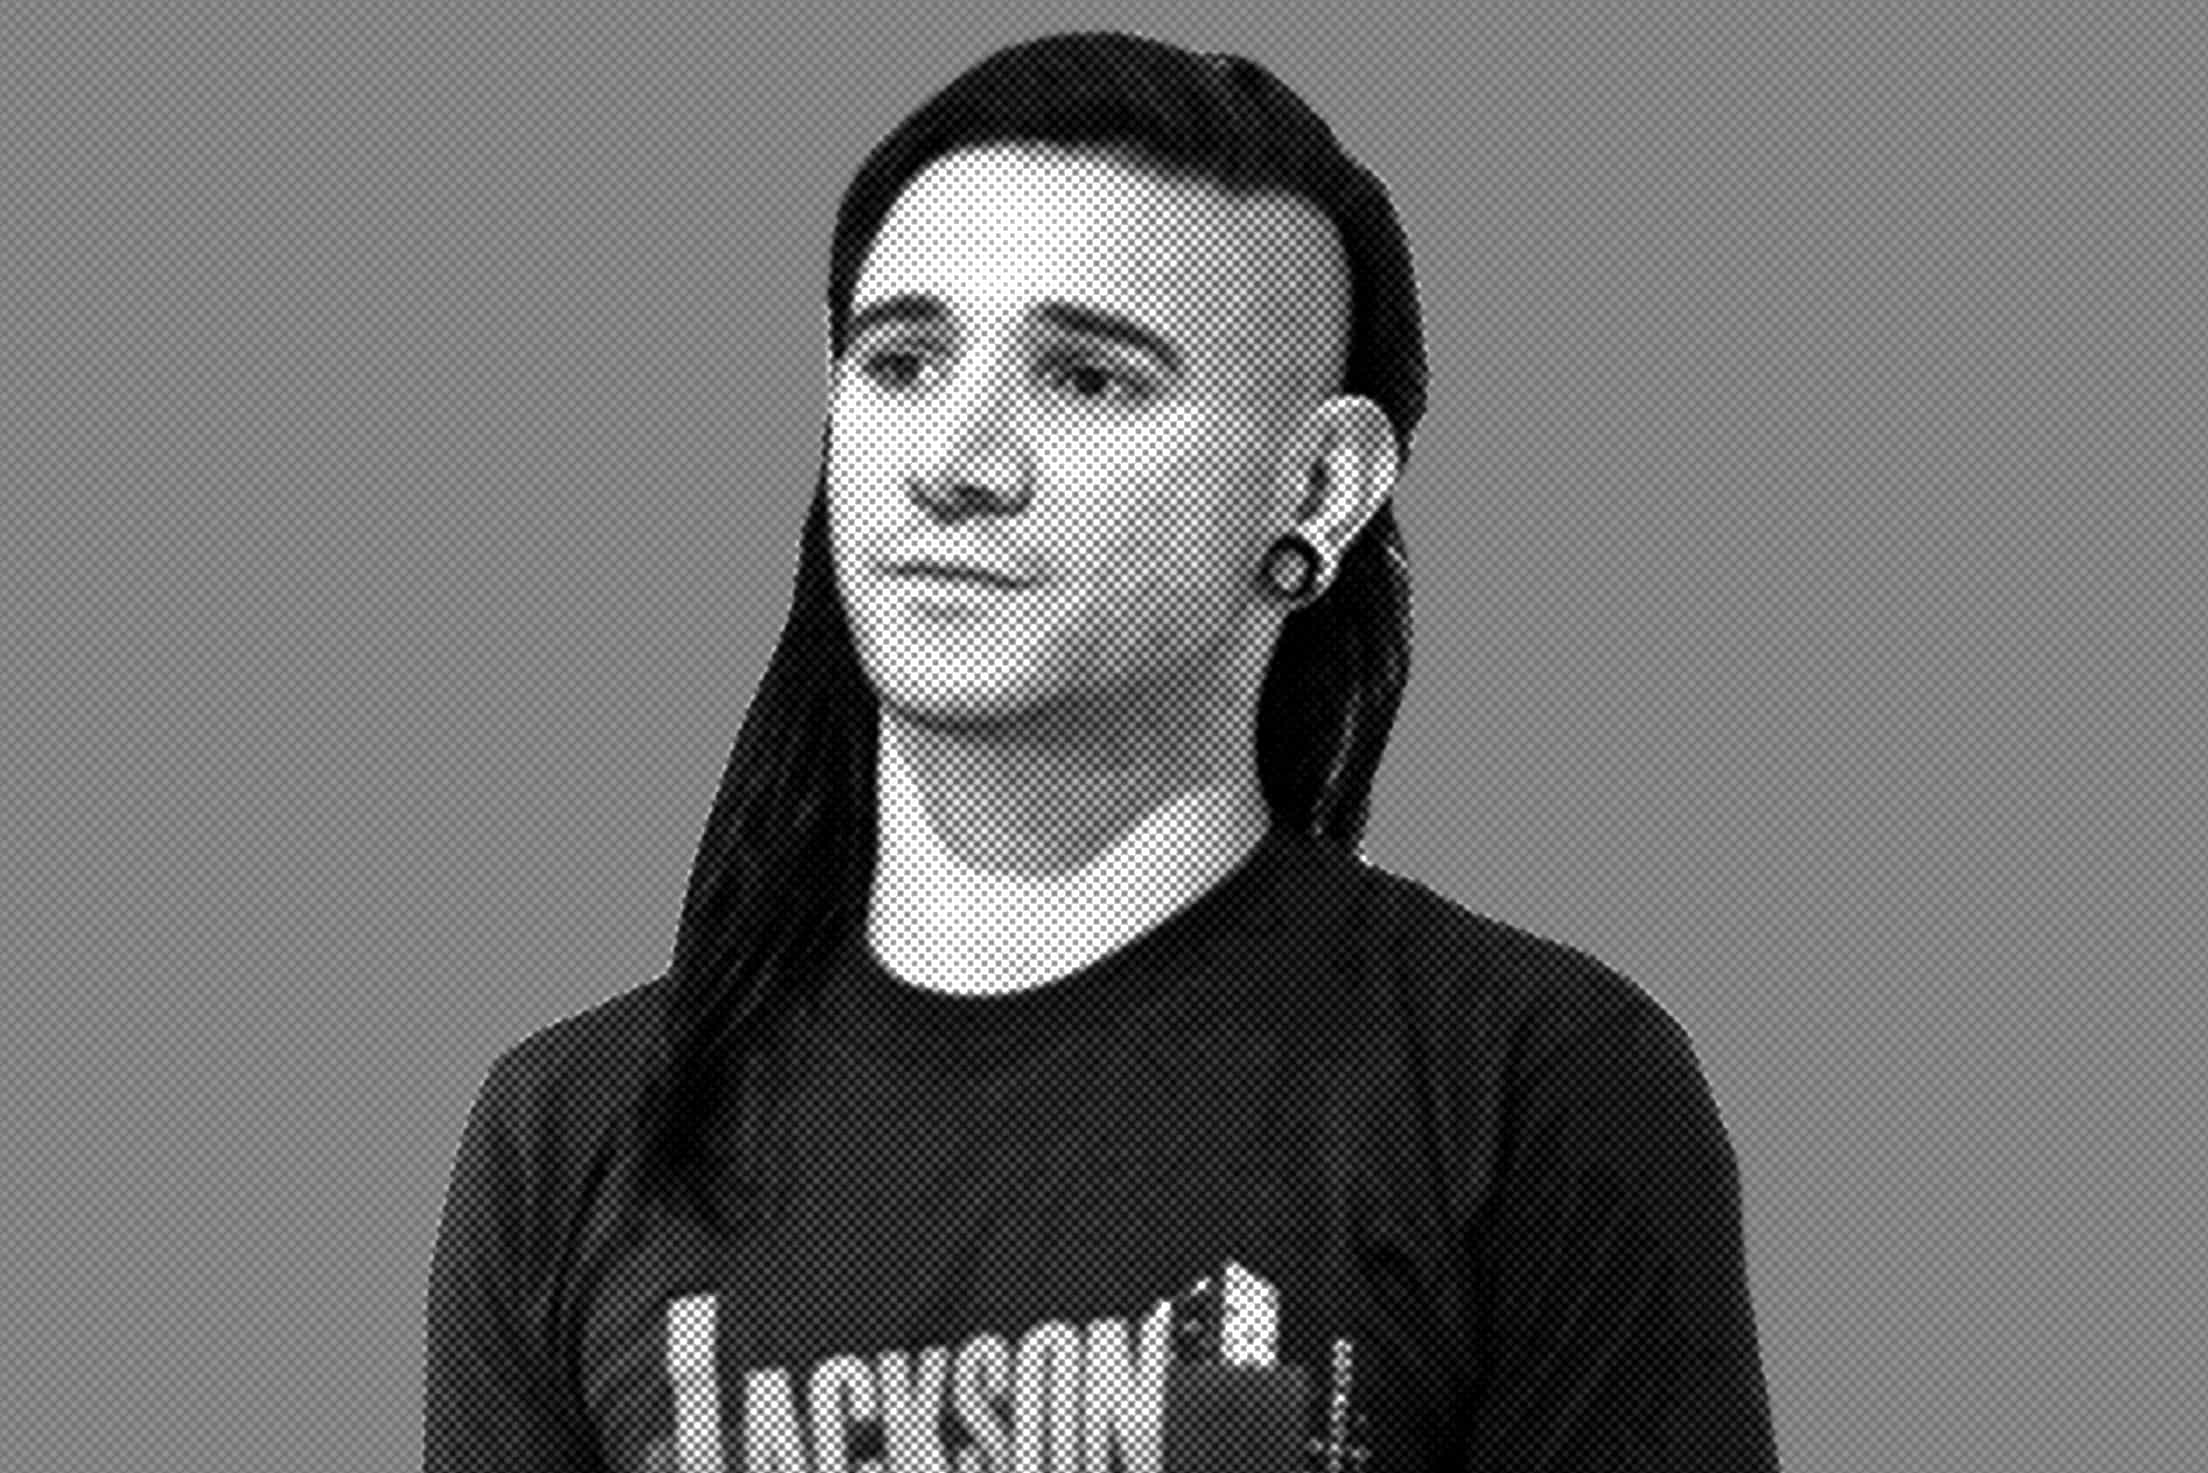 SKRILLEX IS COLLABORATING WITH THE BEACH BOYS' BRUCE JOHNSTON